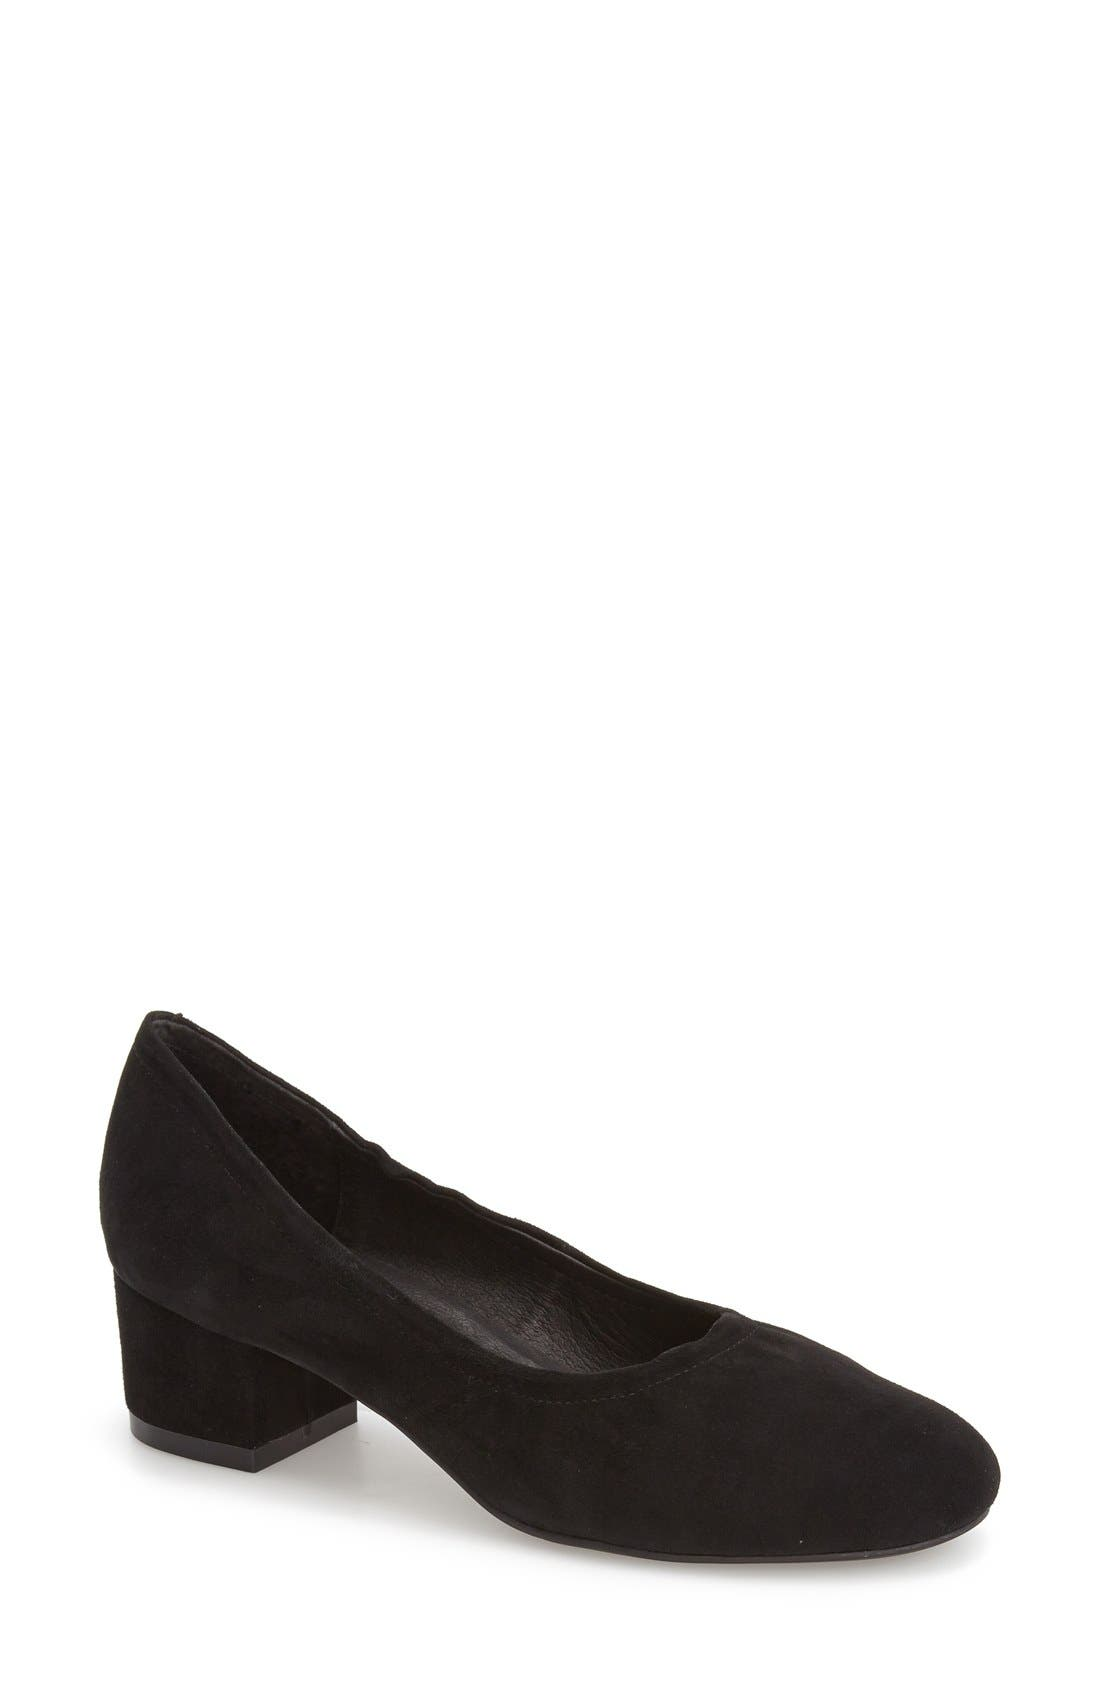 Alternate Image 1 Selected - Jeffrey Campbell 'Bitsie' Round Toe Pump (Women)